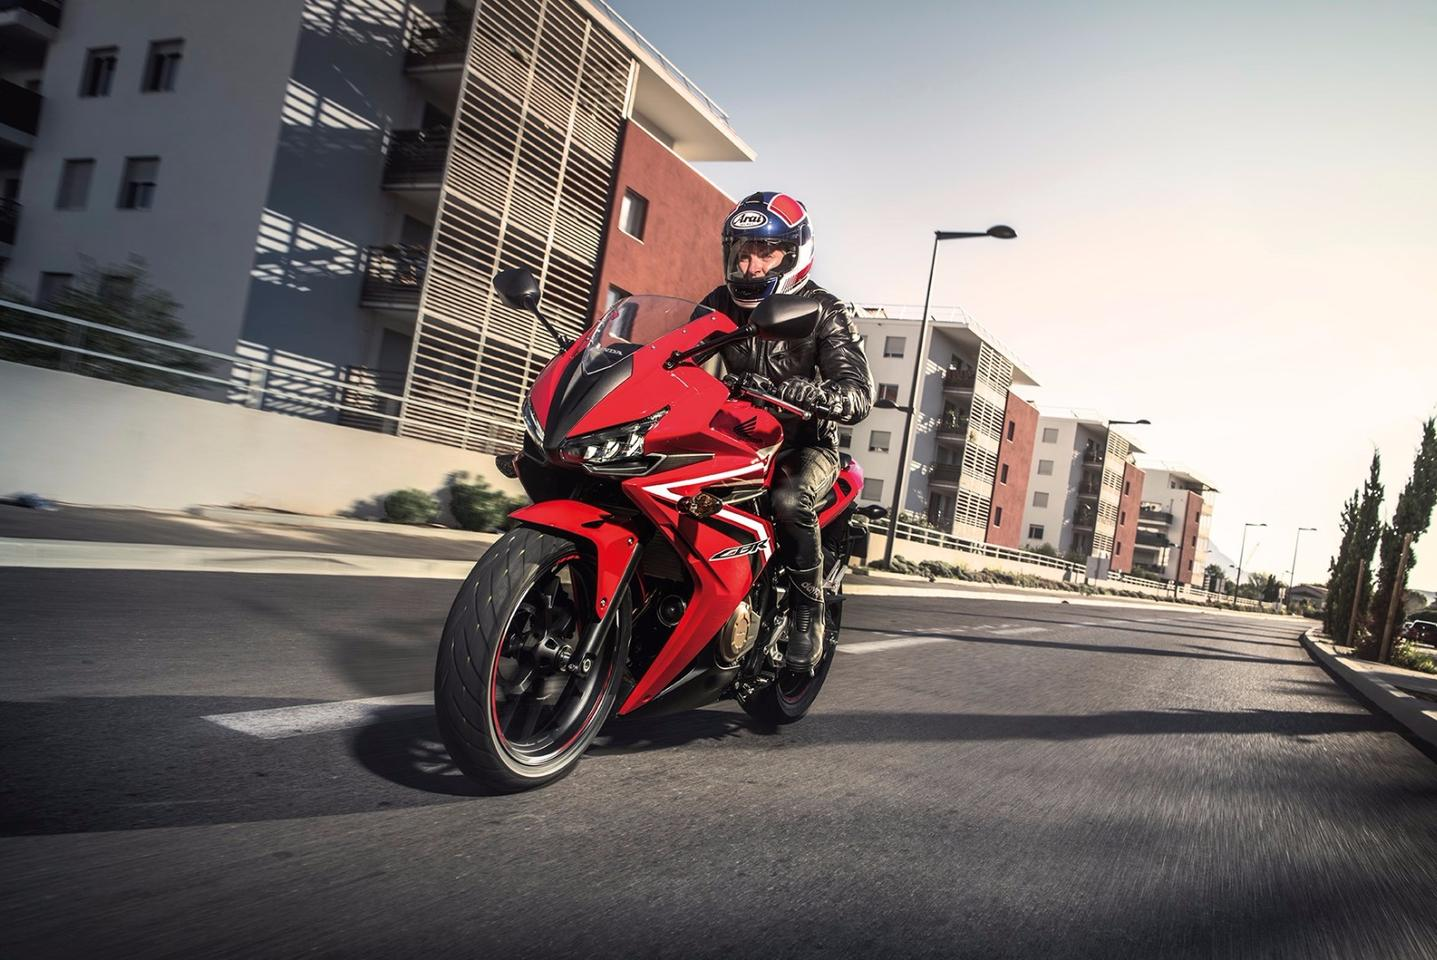 The Honda CBR500R features a selection of upgrades designed to enhance both every day practicality and sport riding efficiency